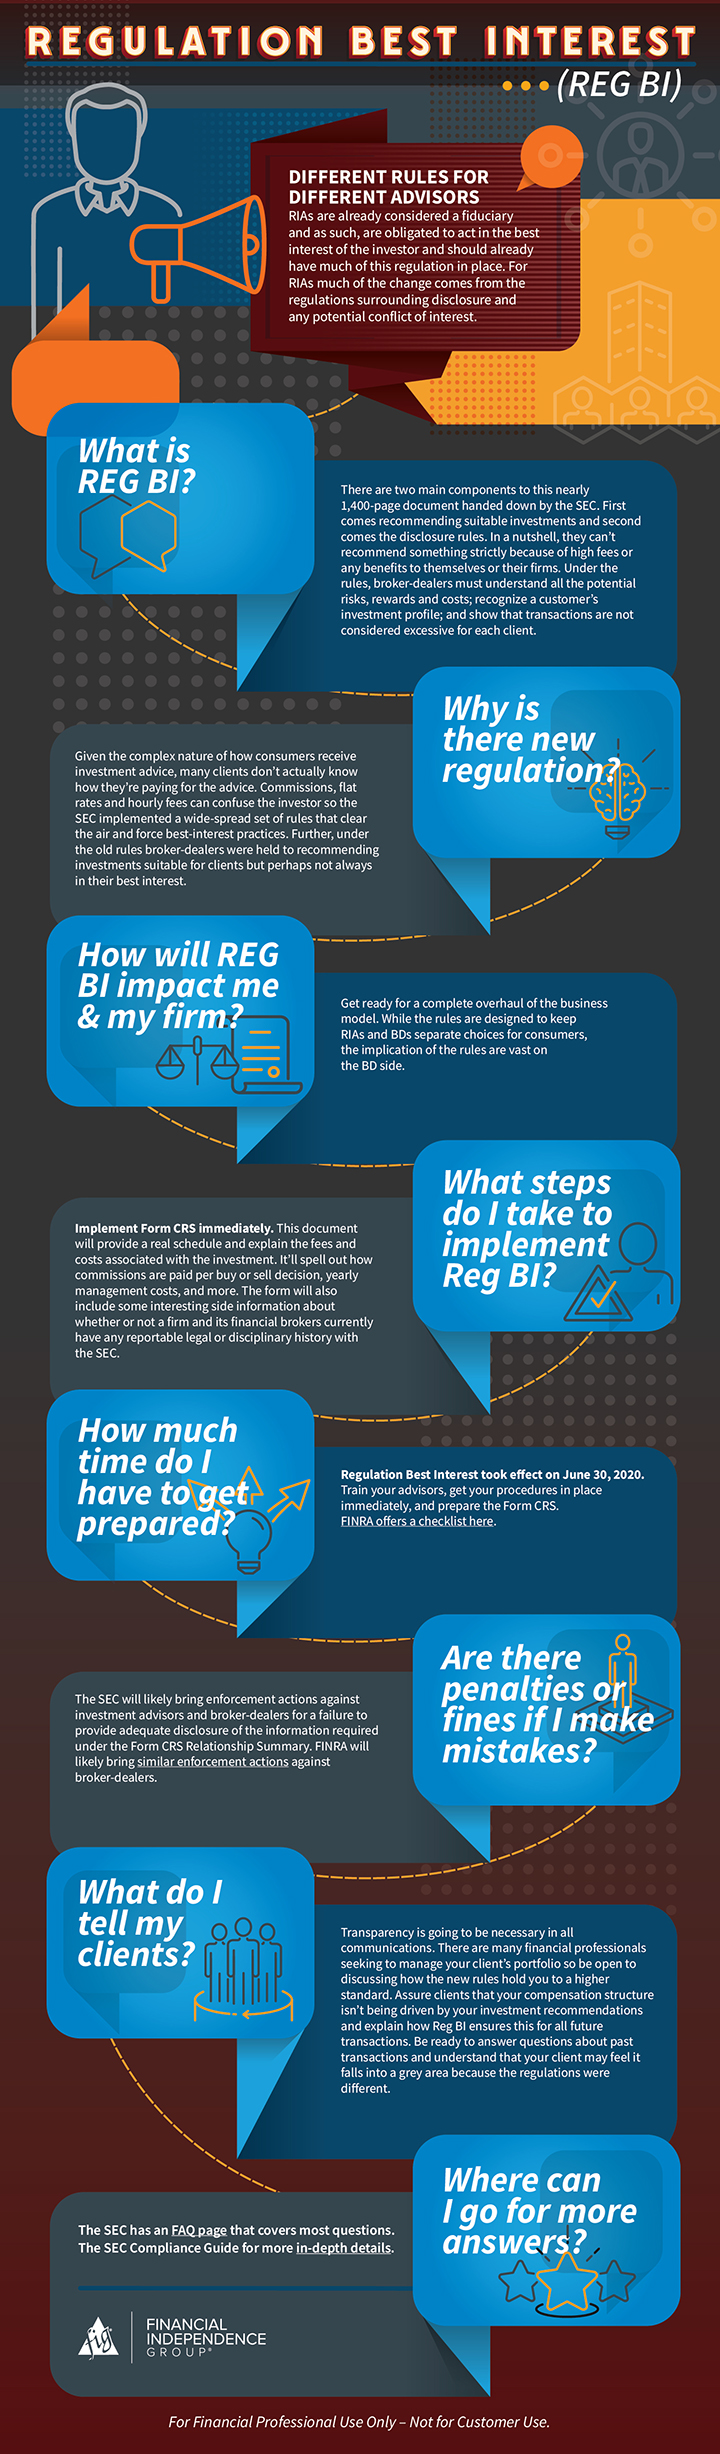 Reg BI infographic - answers to your Reg BI questions